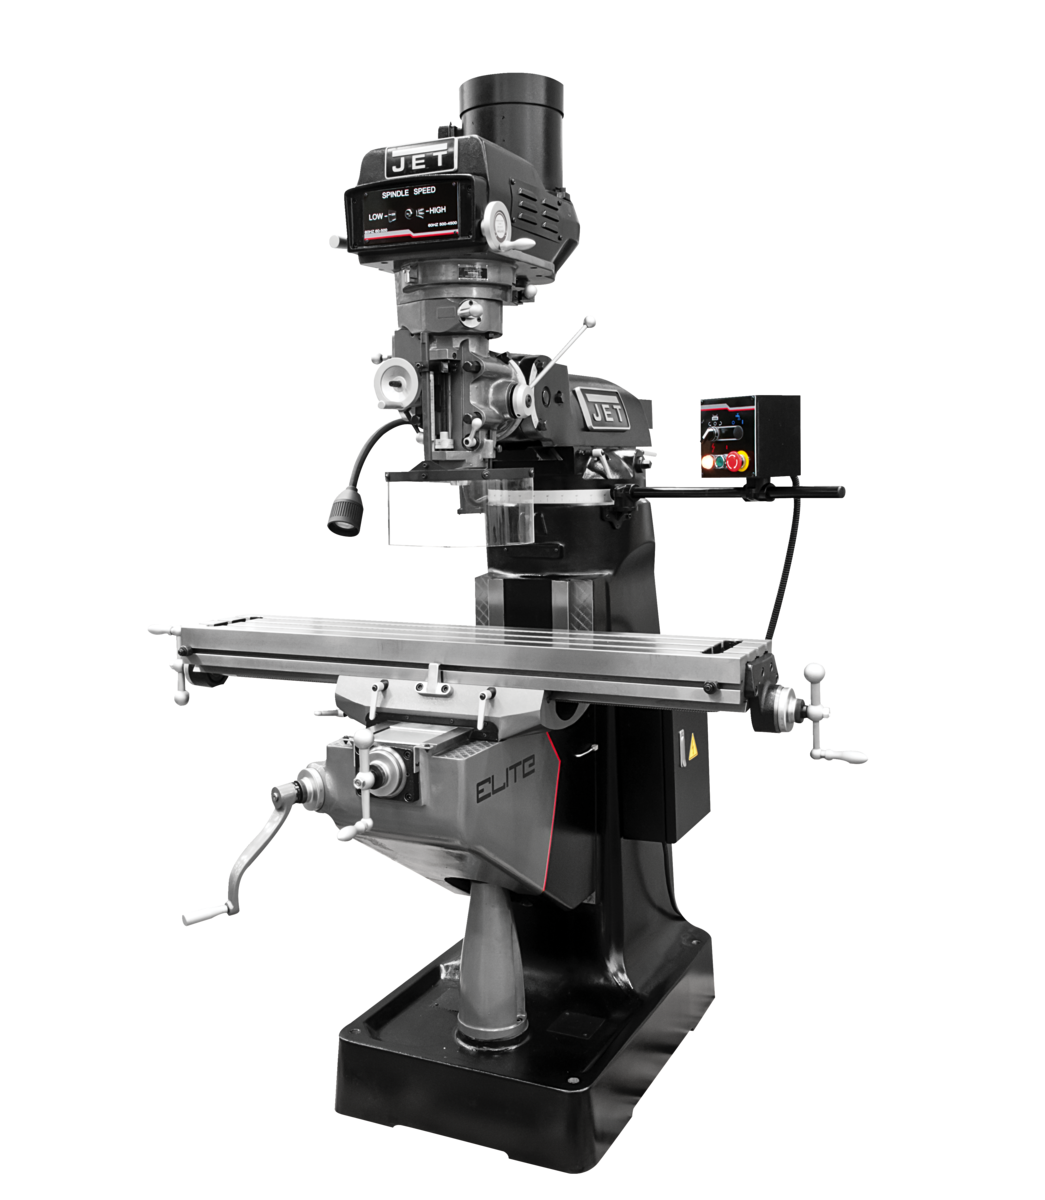 ETM-949 Mill with 2-Axis Newall DP700 DRO and Servo X-Axis Powerfeed and USA Air Powered Draw Bar